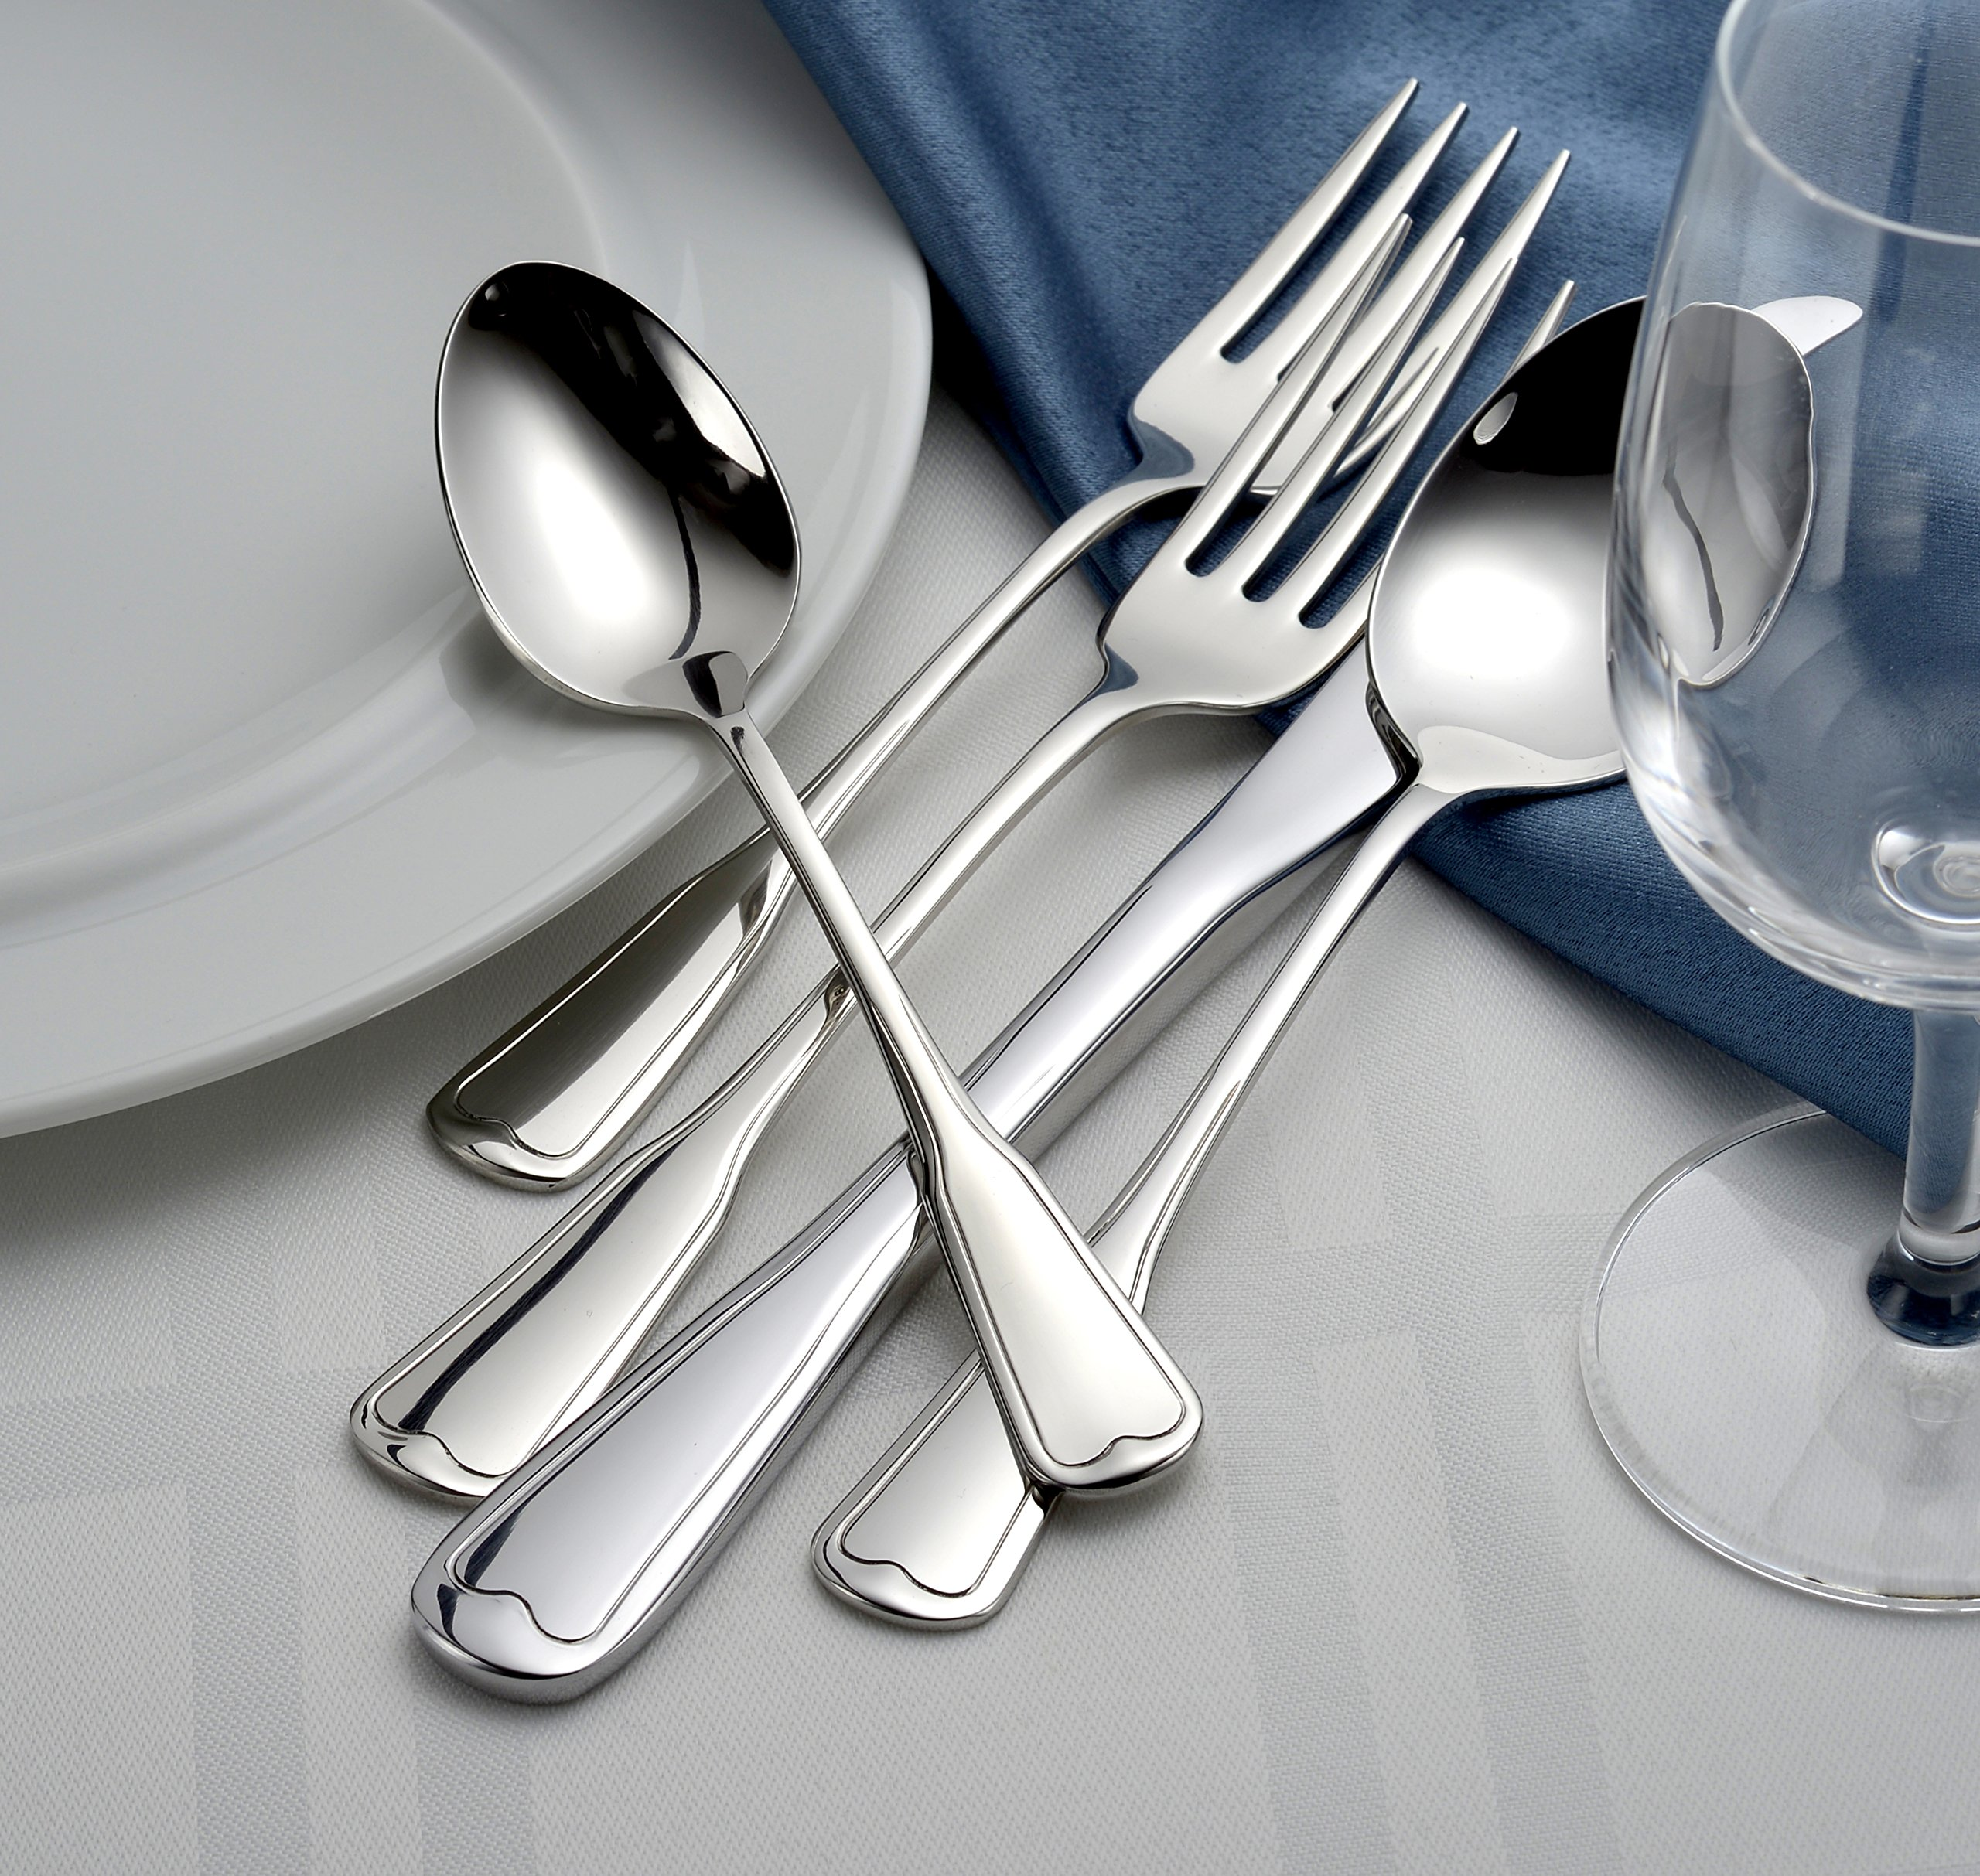 Liberty Tabletop Richmond 20 Piece Flatware Set service for 4 stainless steel 18/10 Made in USA by Liberty Tabletop (Image #6)